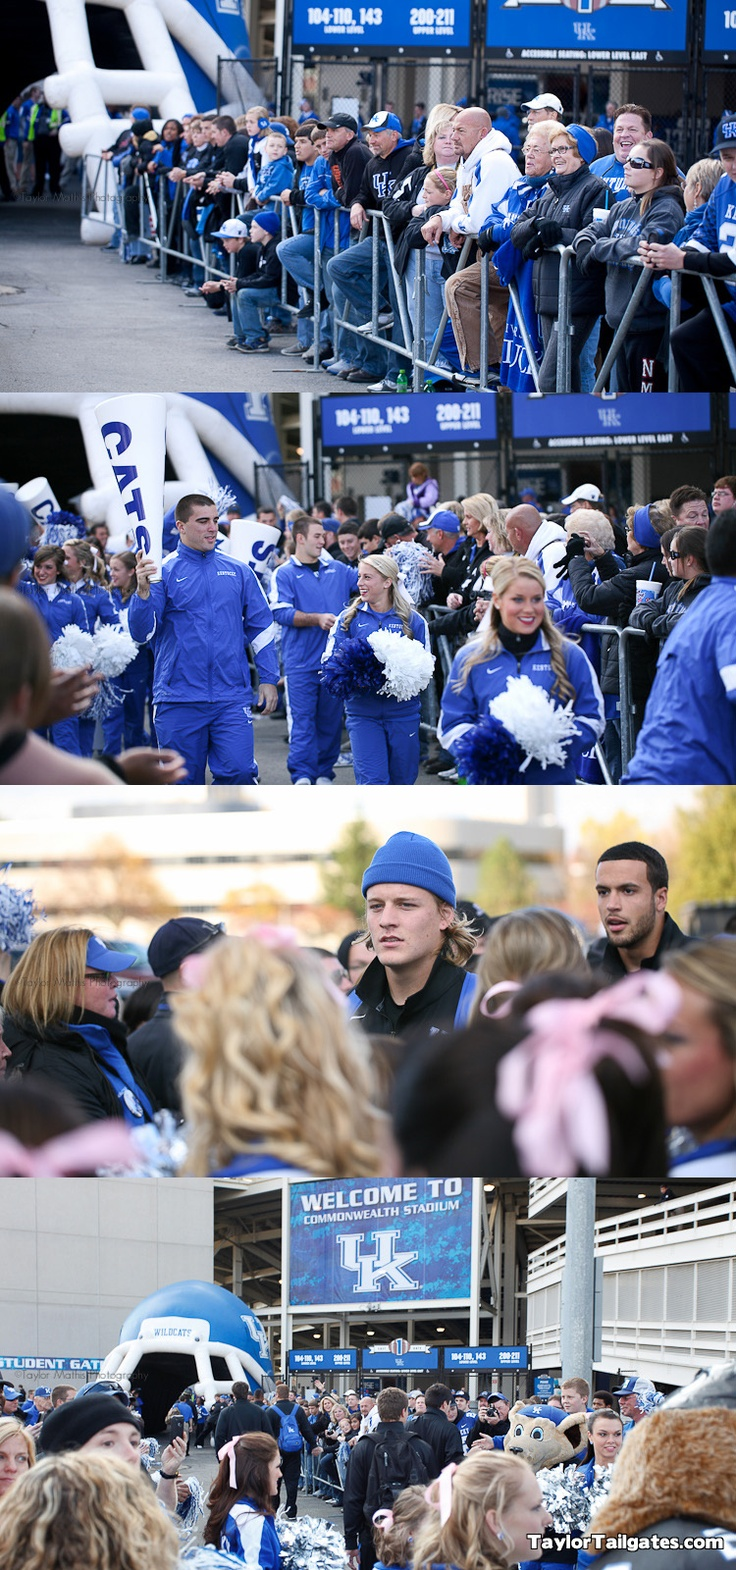 #Kentucky tailgating & Keeneland Races - an SEC tradition hard to match